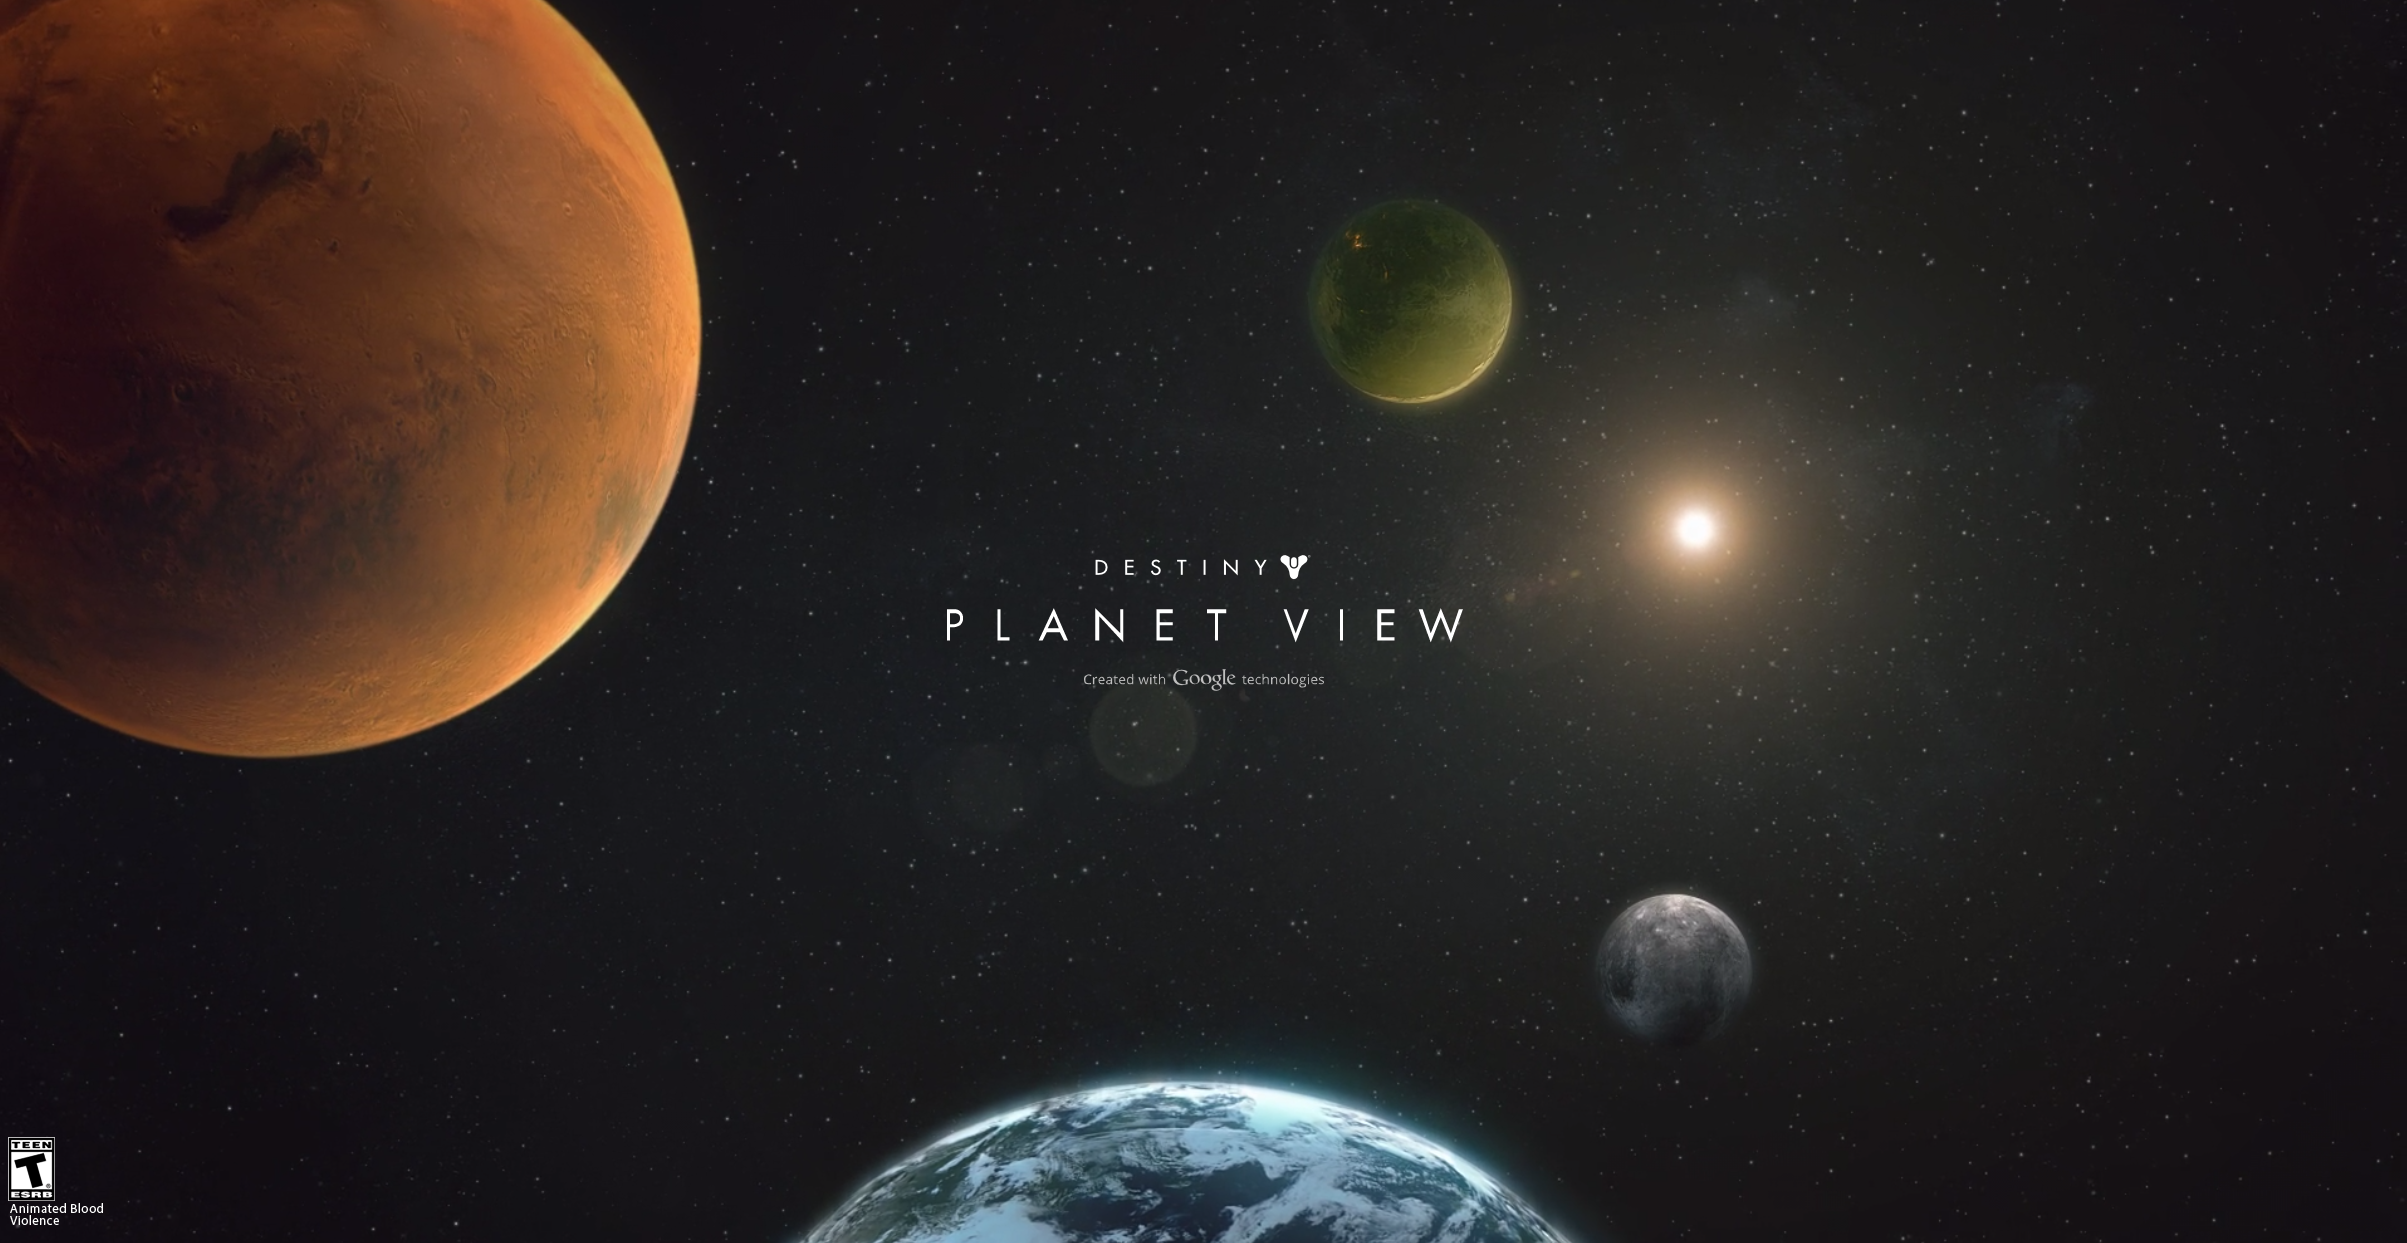 Destiny Planet View Powered By Google Technologies | aahh